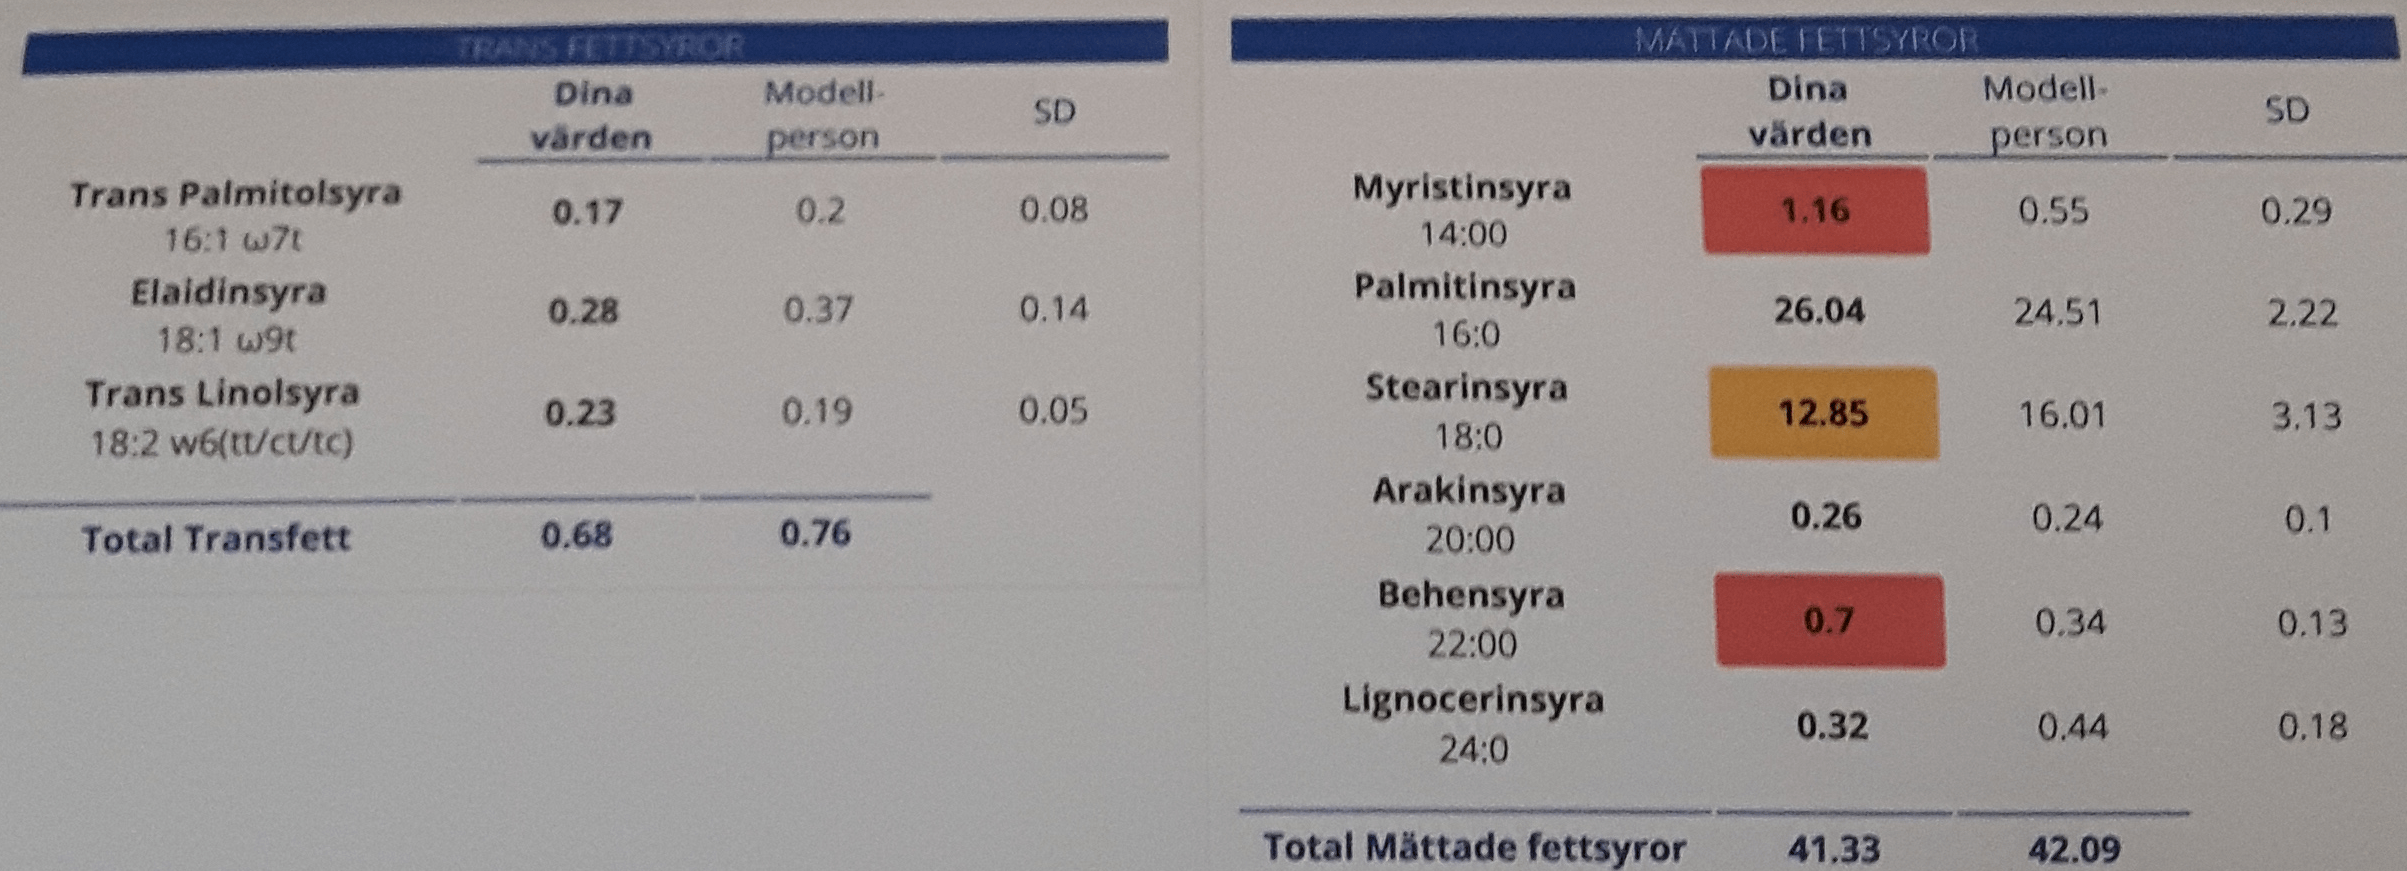 Arcticmed test results4